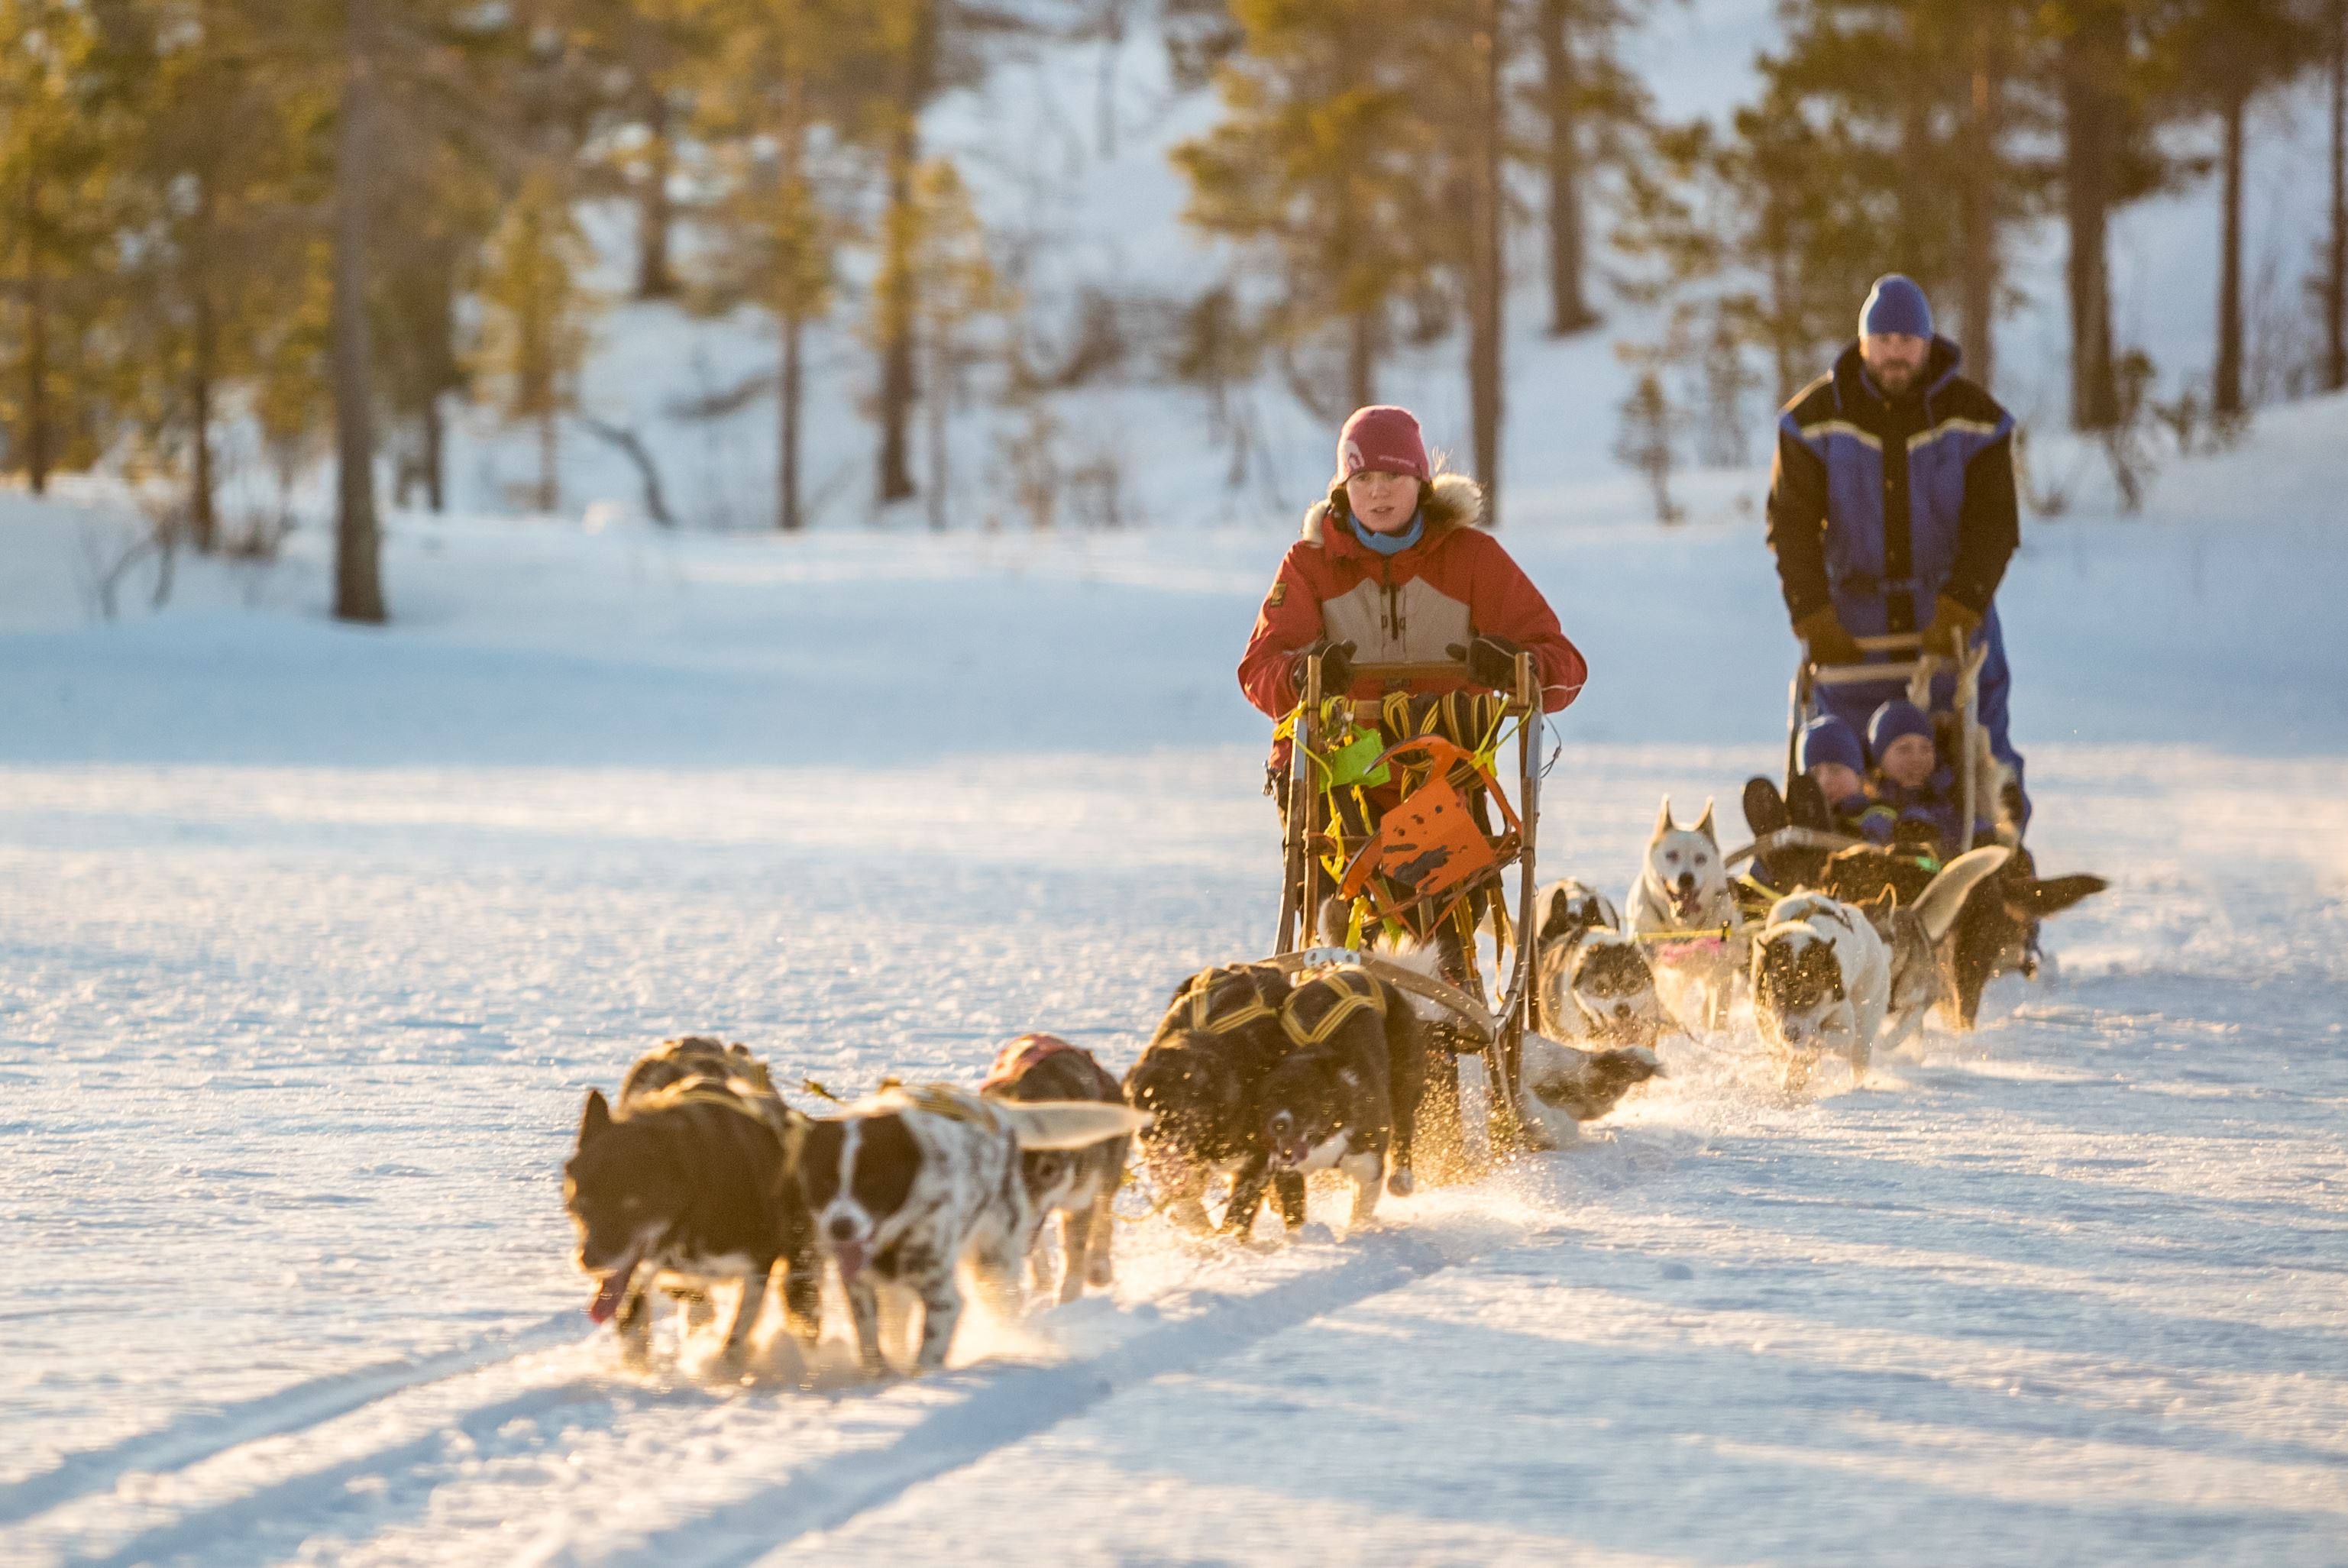 Dogsledding through the White Silence – Malangen Resort